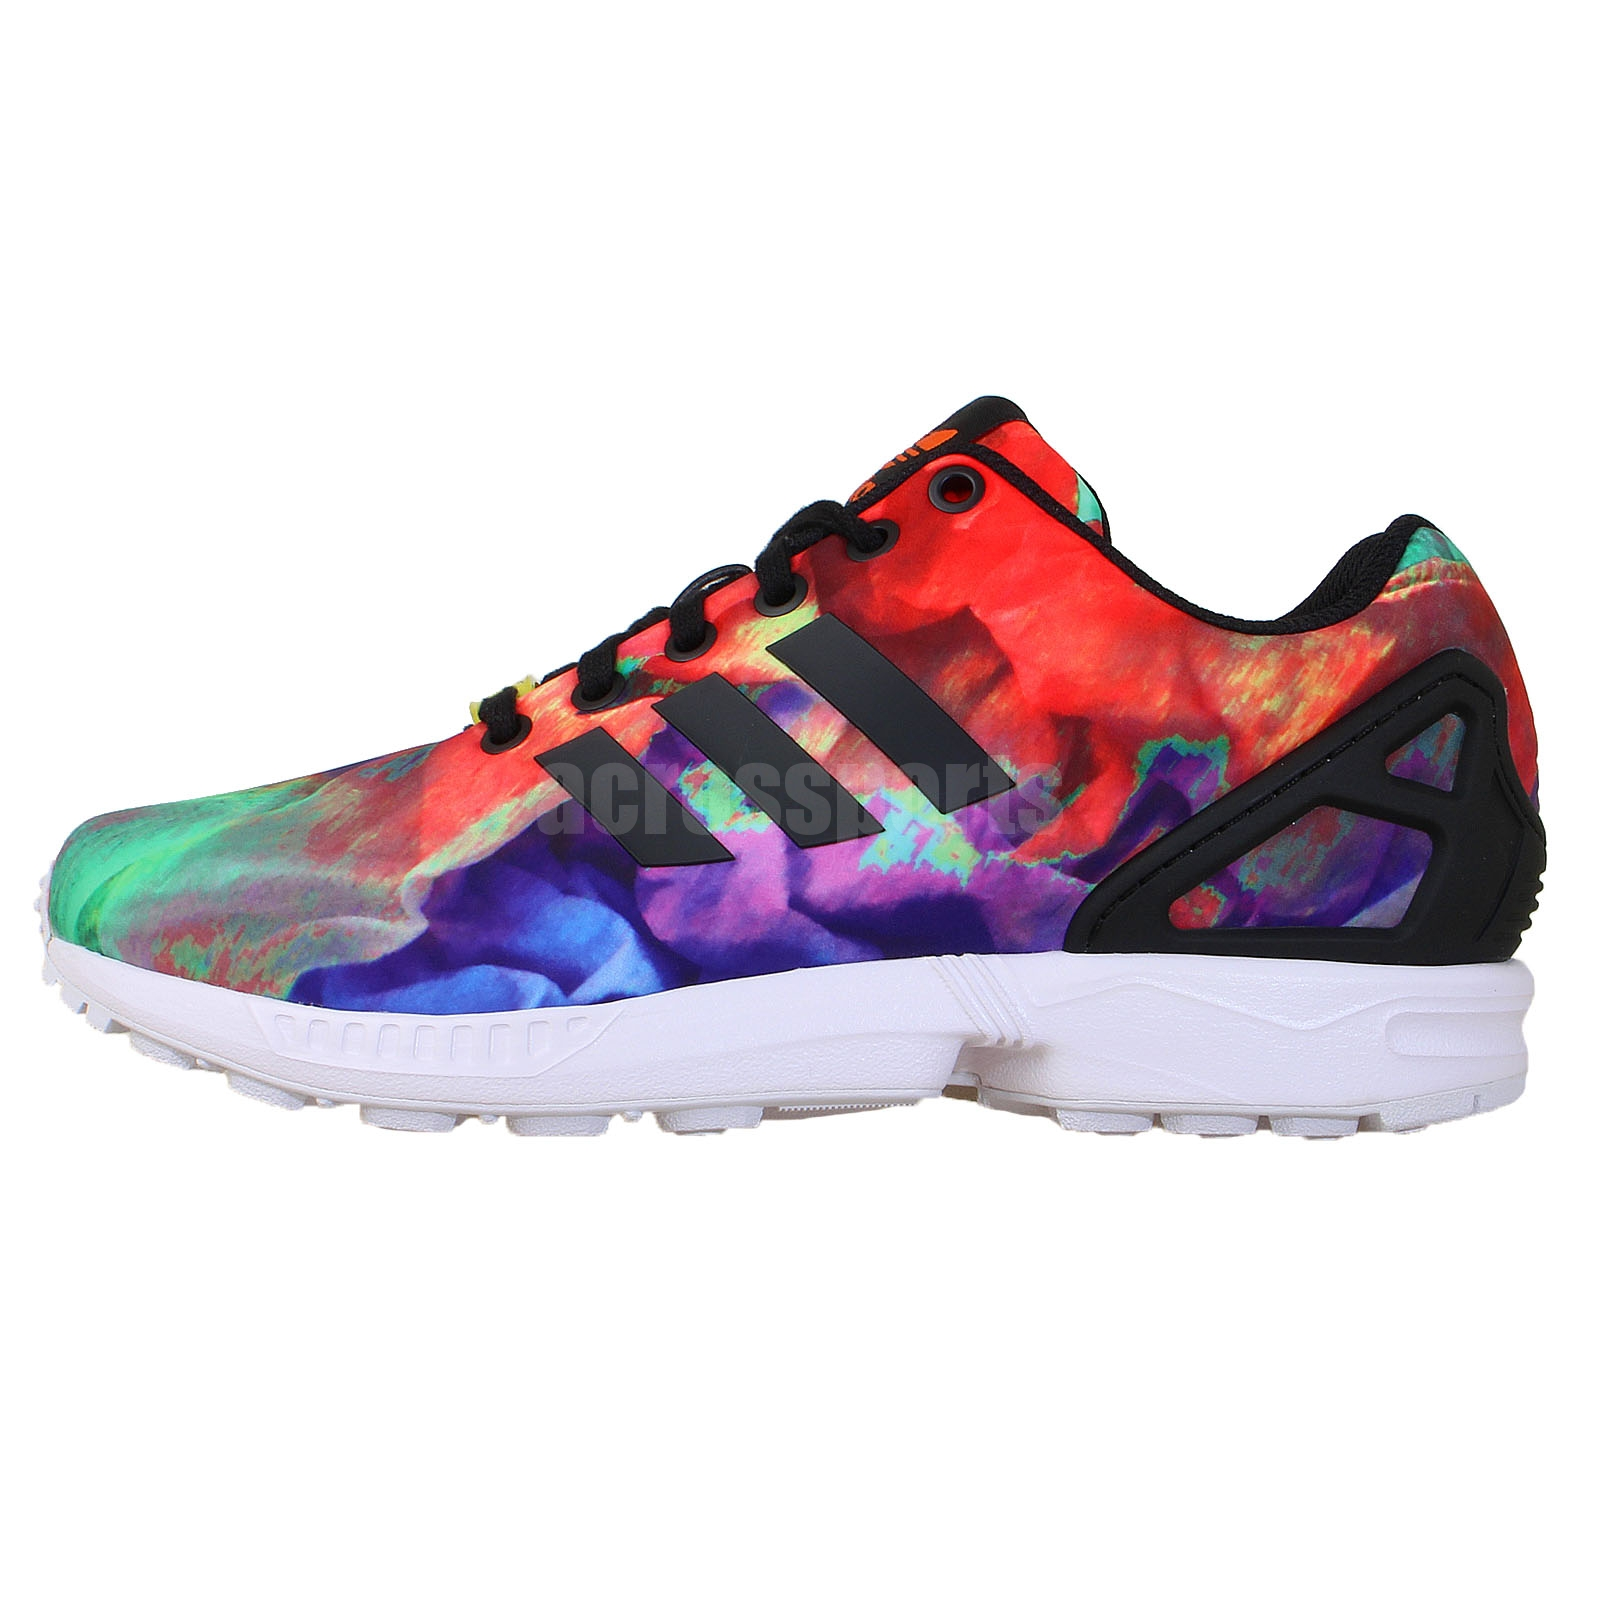 Colorful Adidas Running Shoes